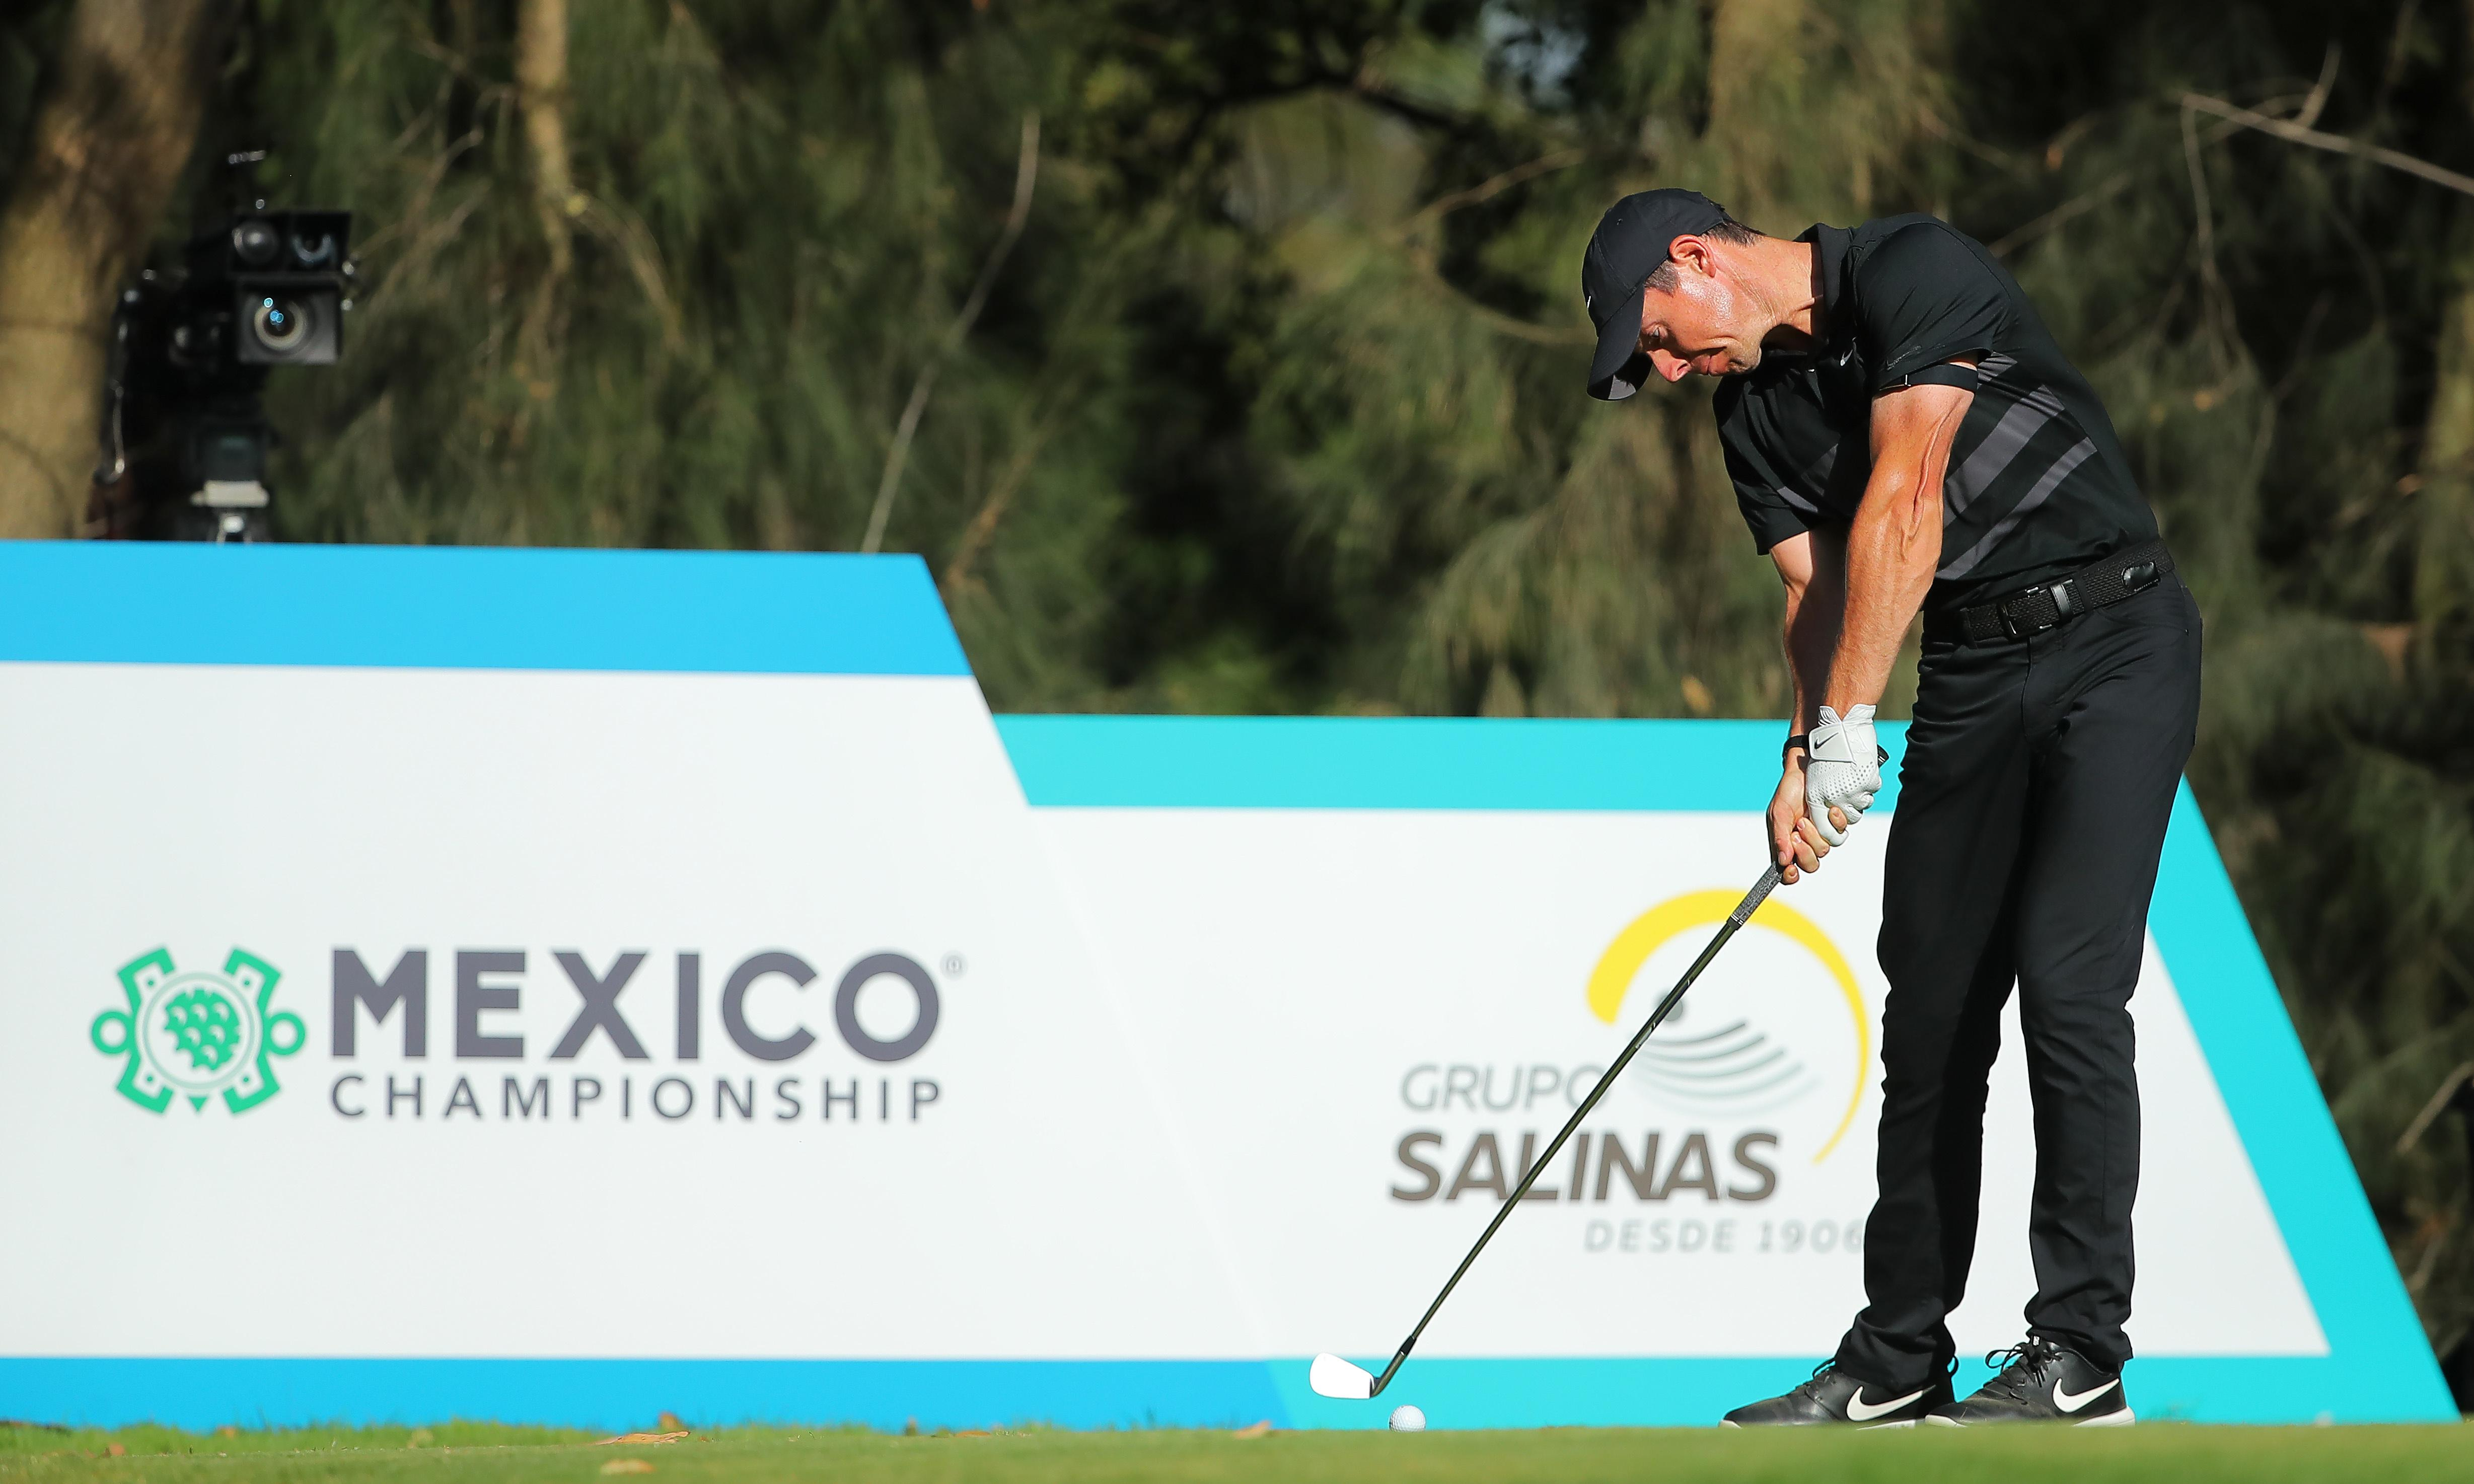 Rory McIlroy does talking on course in Mexico after shunning Premier League